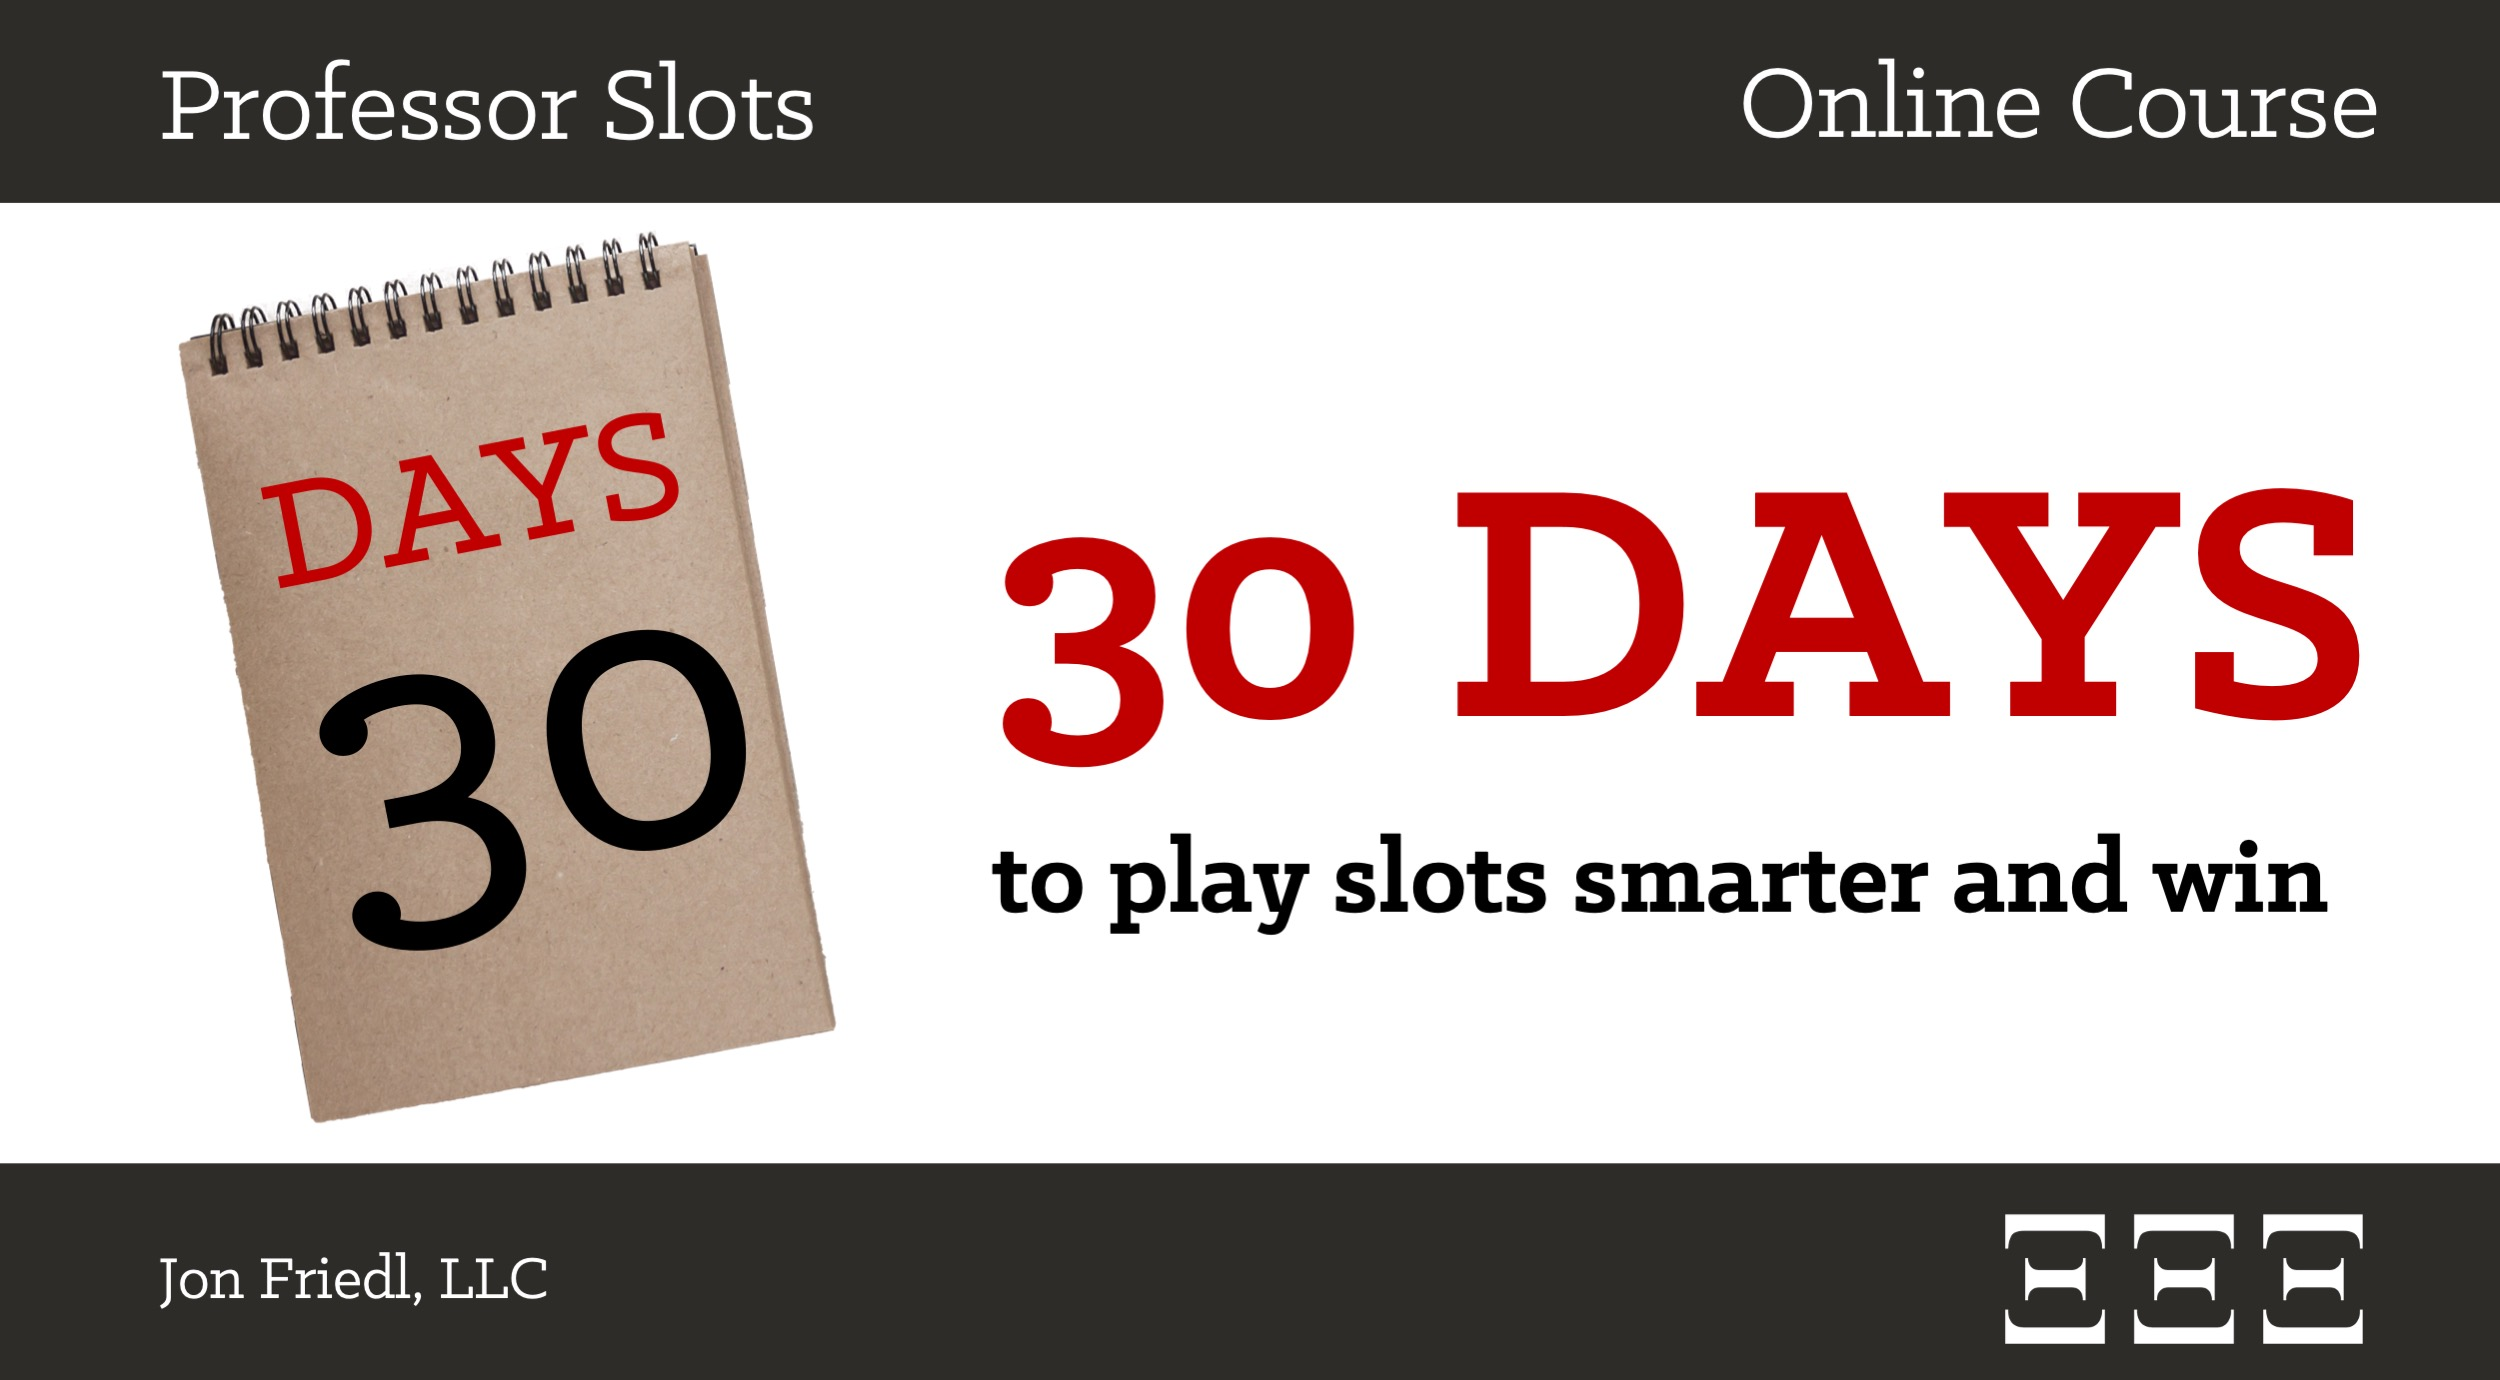 30 Days to Play Slots Smarter and Win